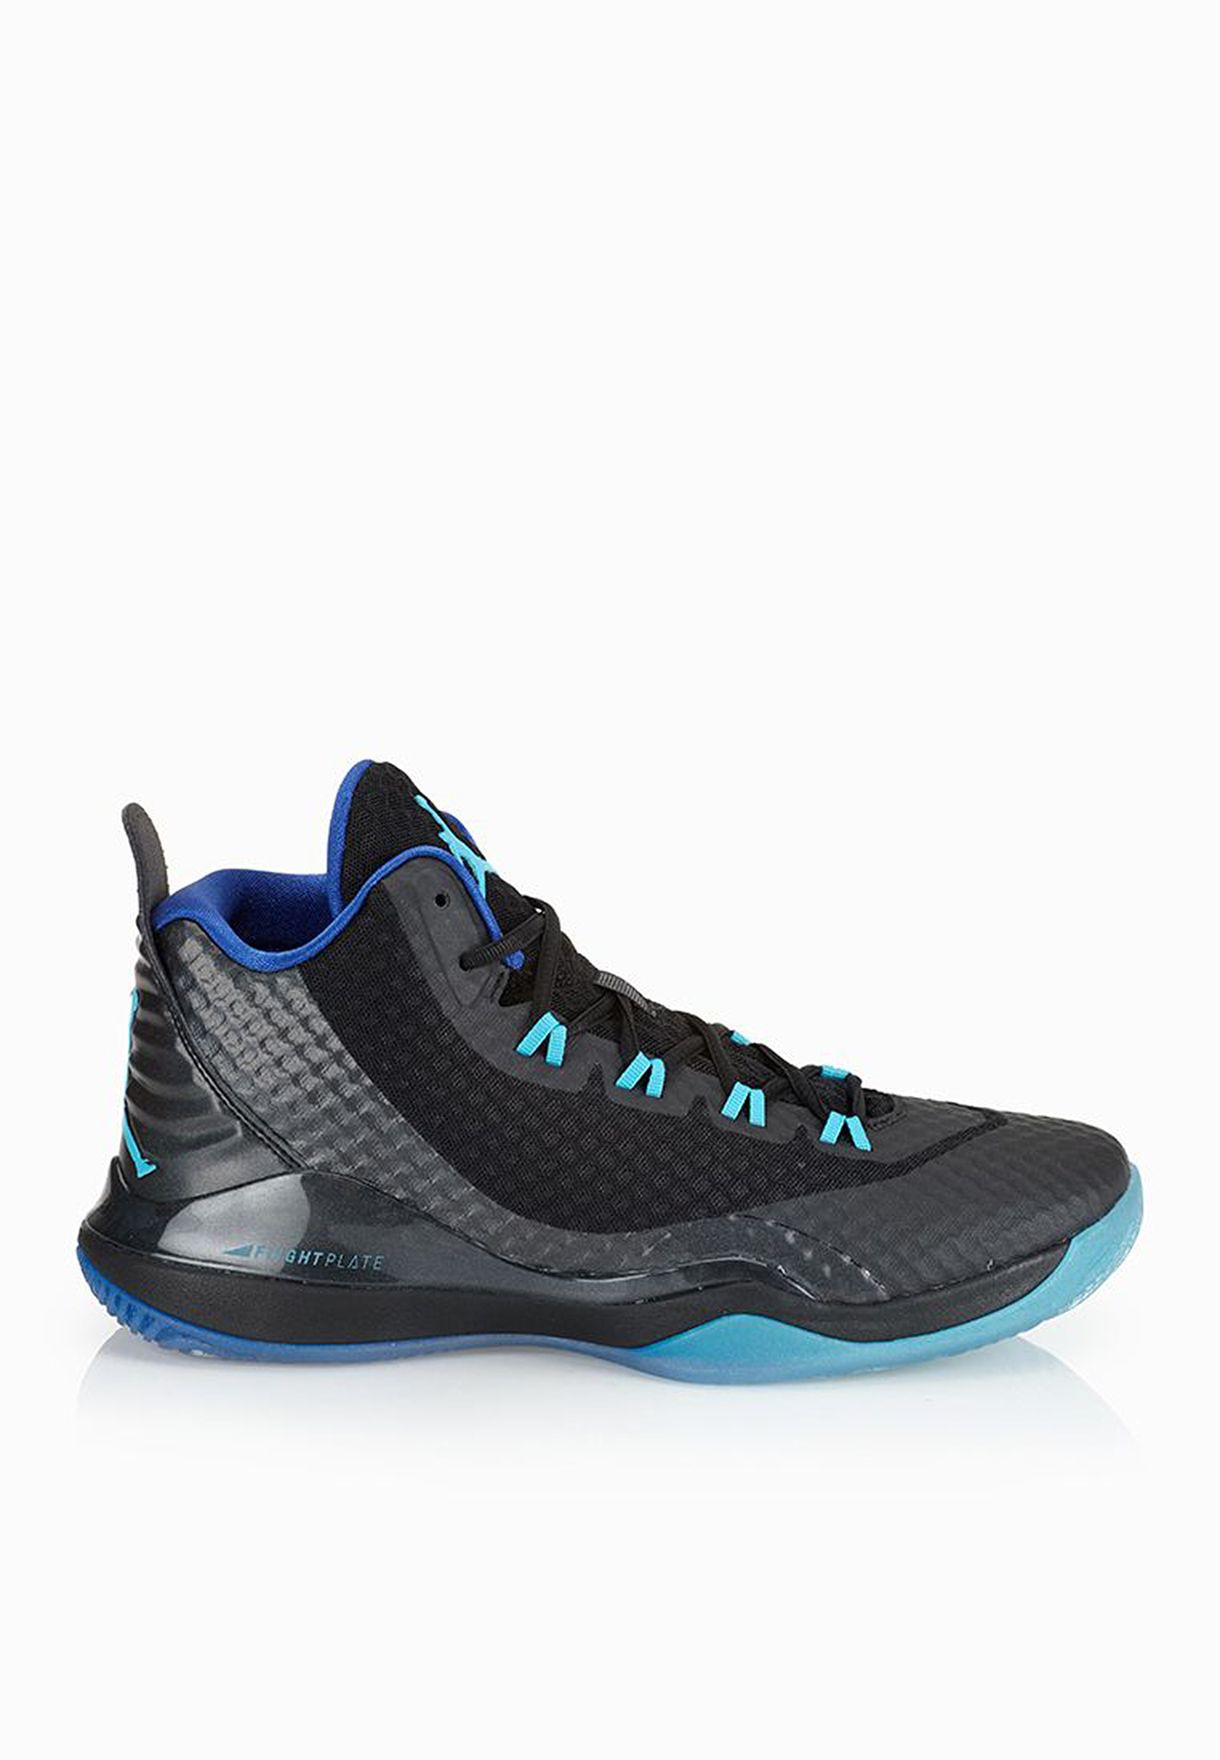 542baa9aa621 Shop Nike black Jordan Super Fly 3 724934-017 for Men in UAE ...